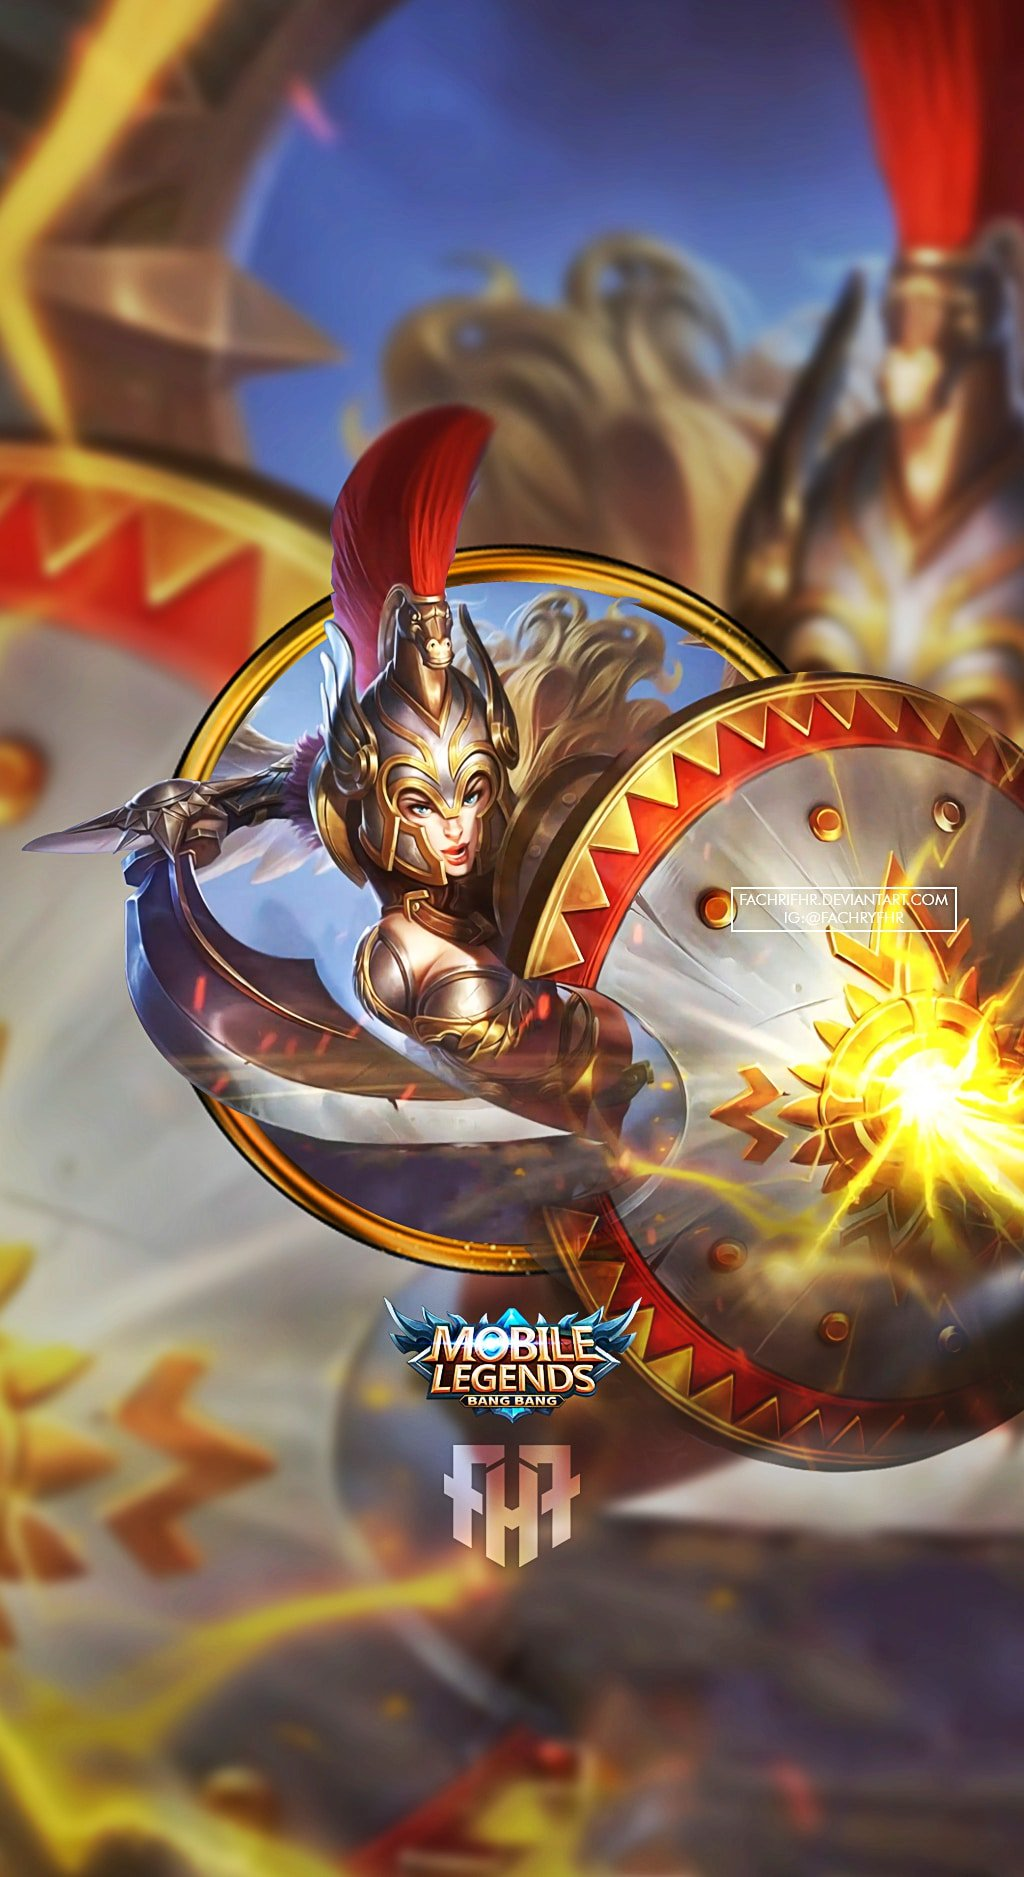 Wallpaper Mobile Legends Full HD Terbaik dan Terlengkap ...